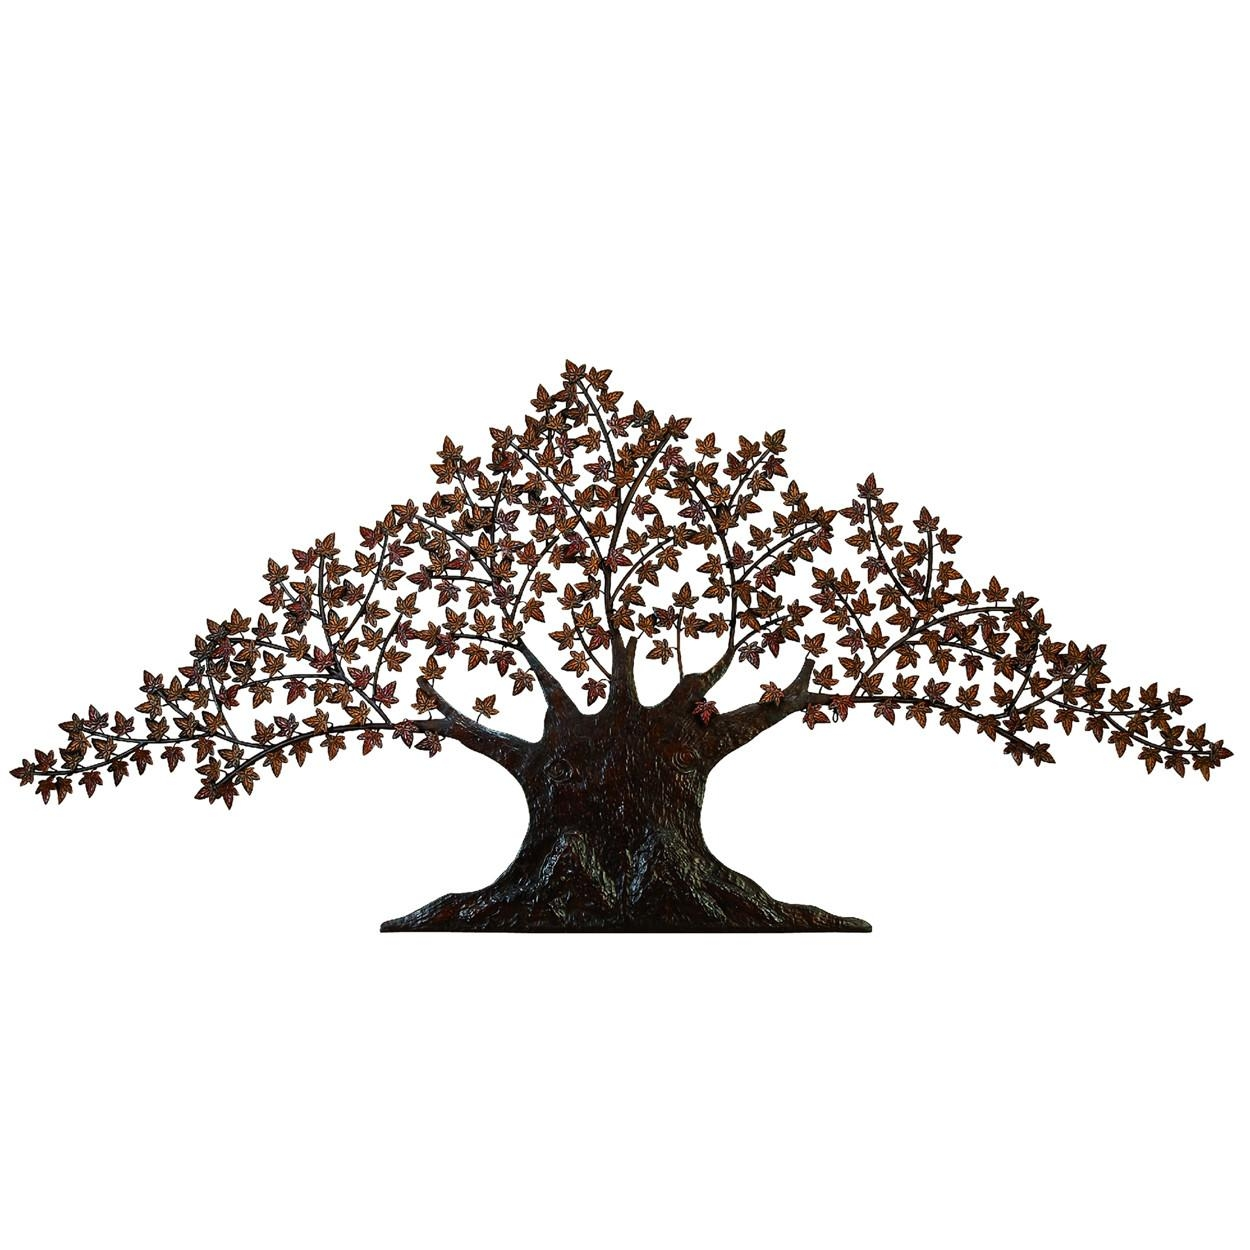 Large Metal Tree Wall Decoration | Roselawnlutheran Pertaining To Windy Oak Tree Metal Wall Art (Image 4 of 20)